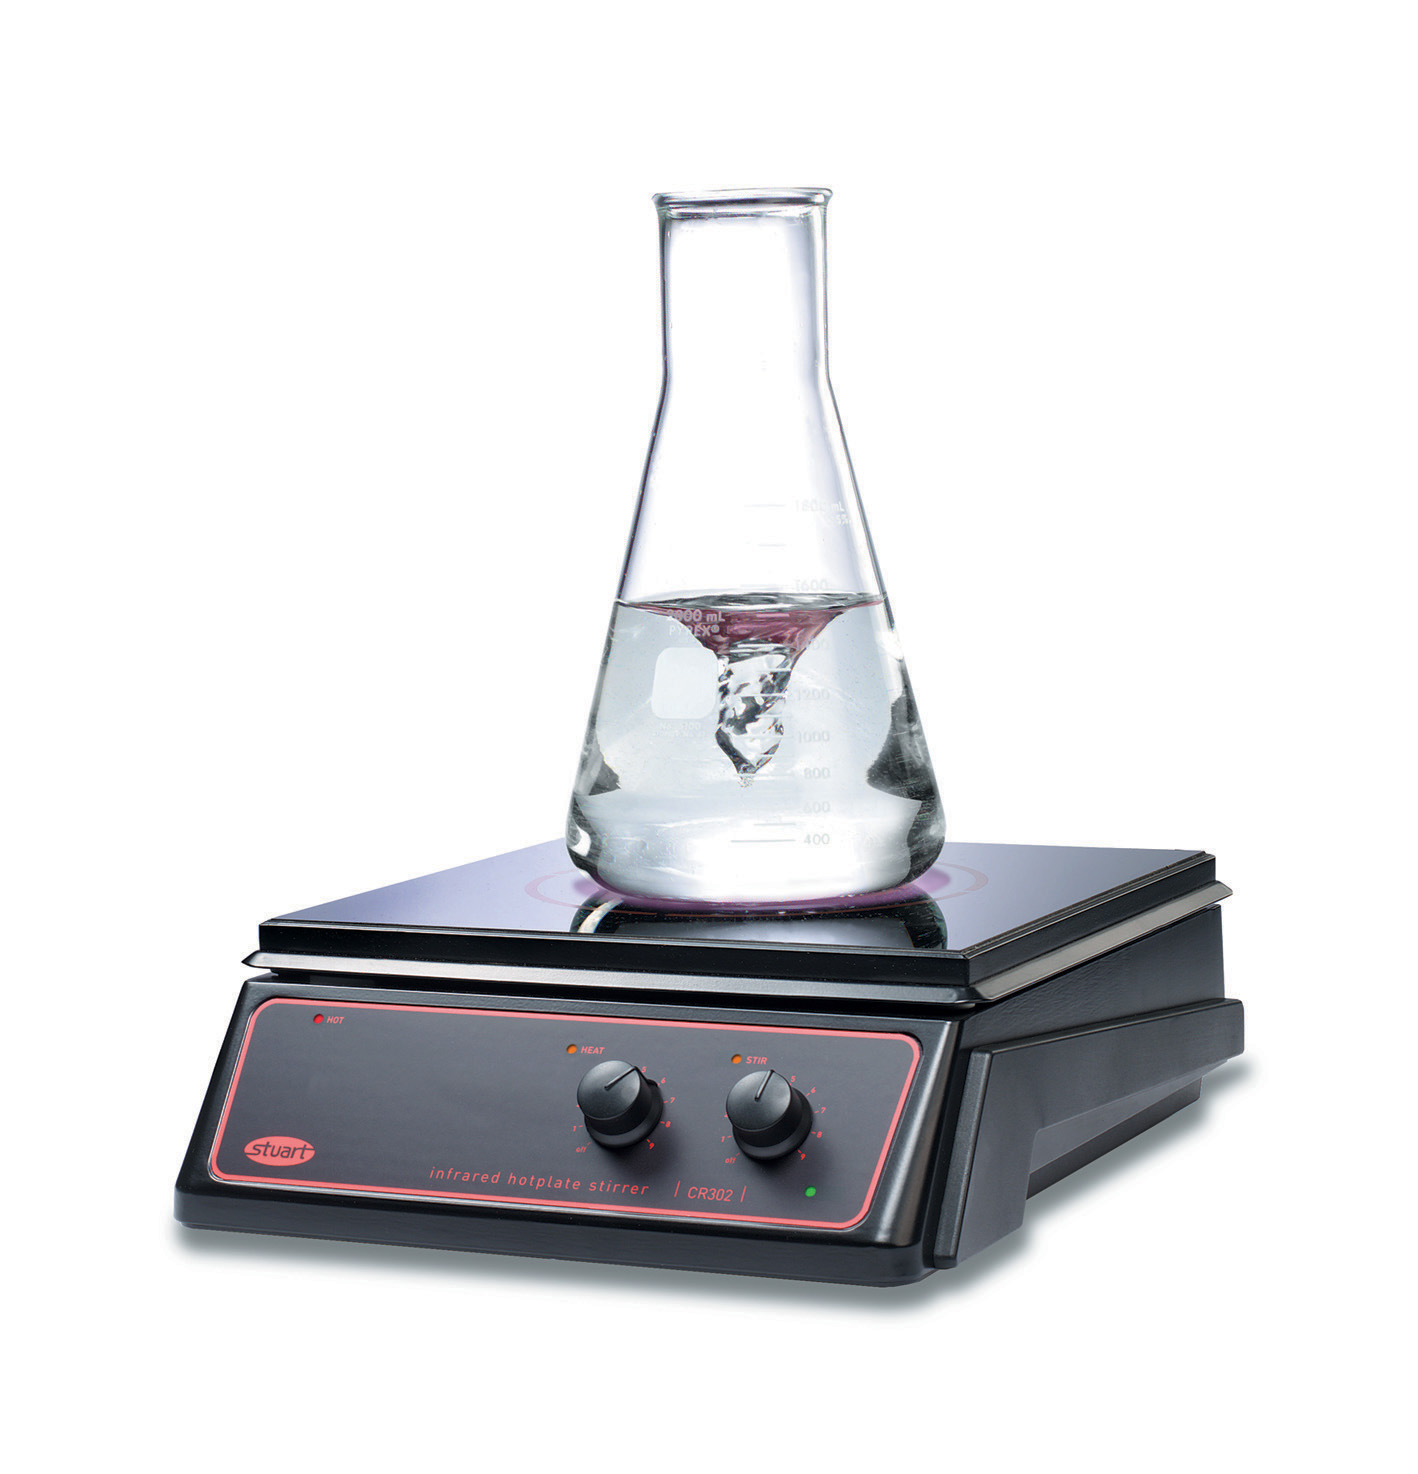 Stuart Cr302 Magnetic Stirrer